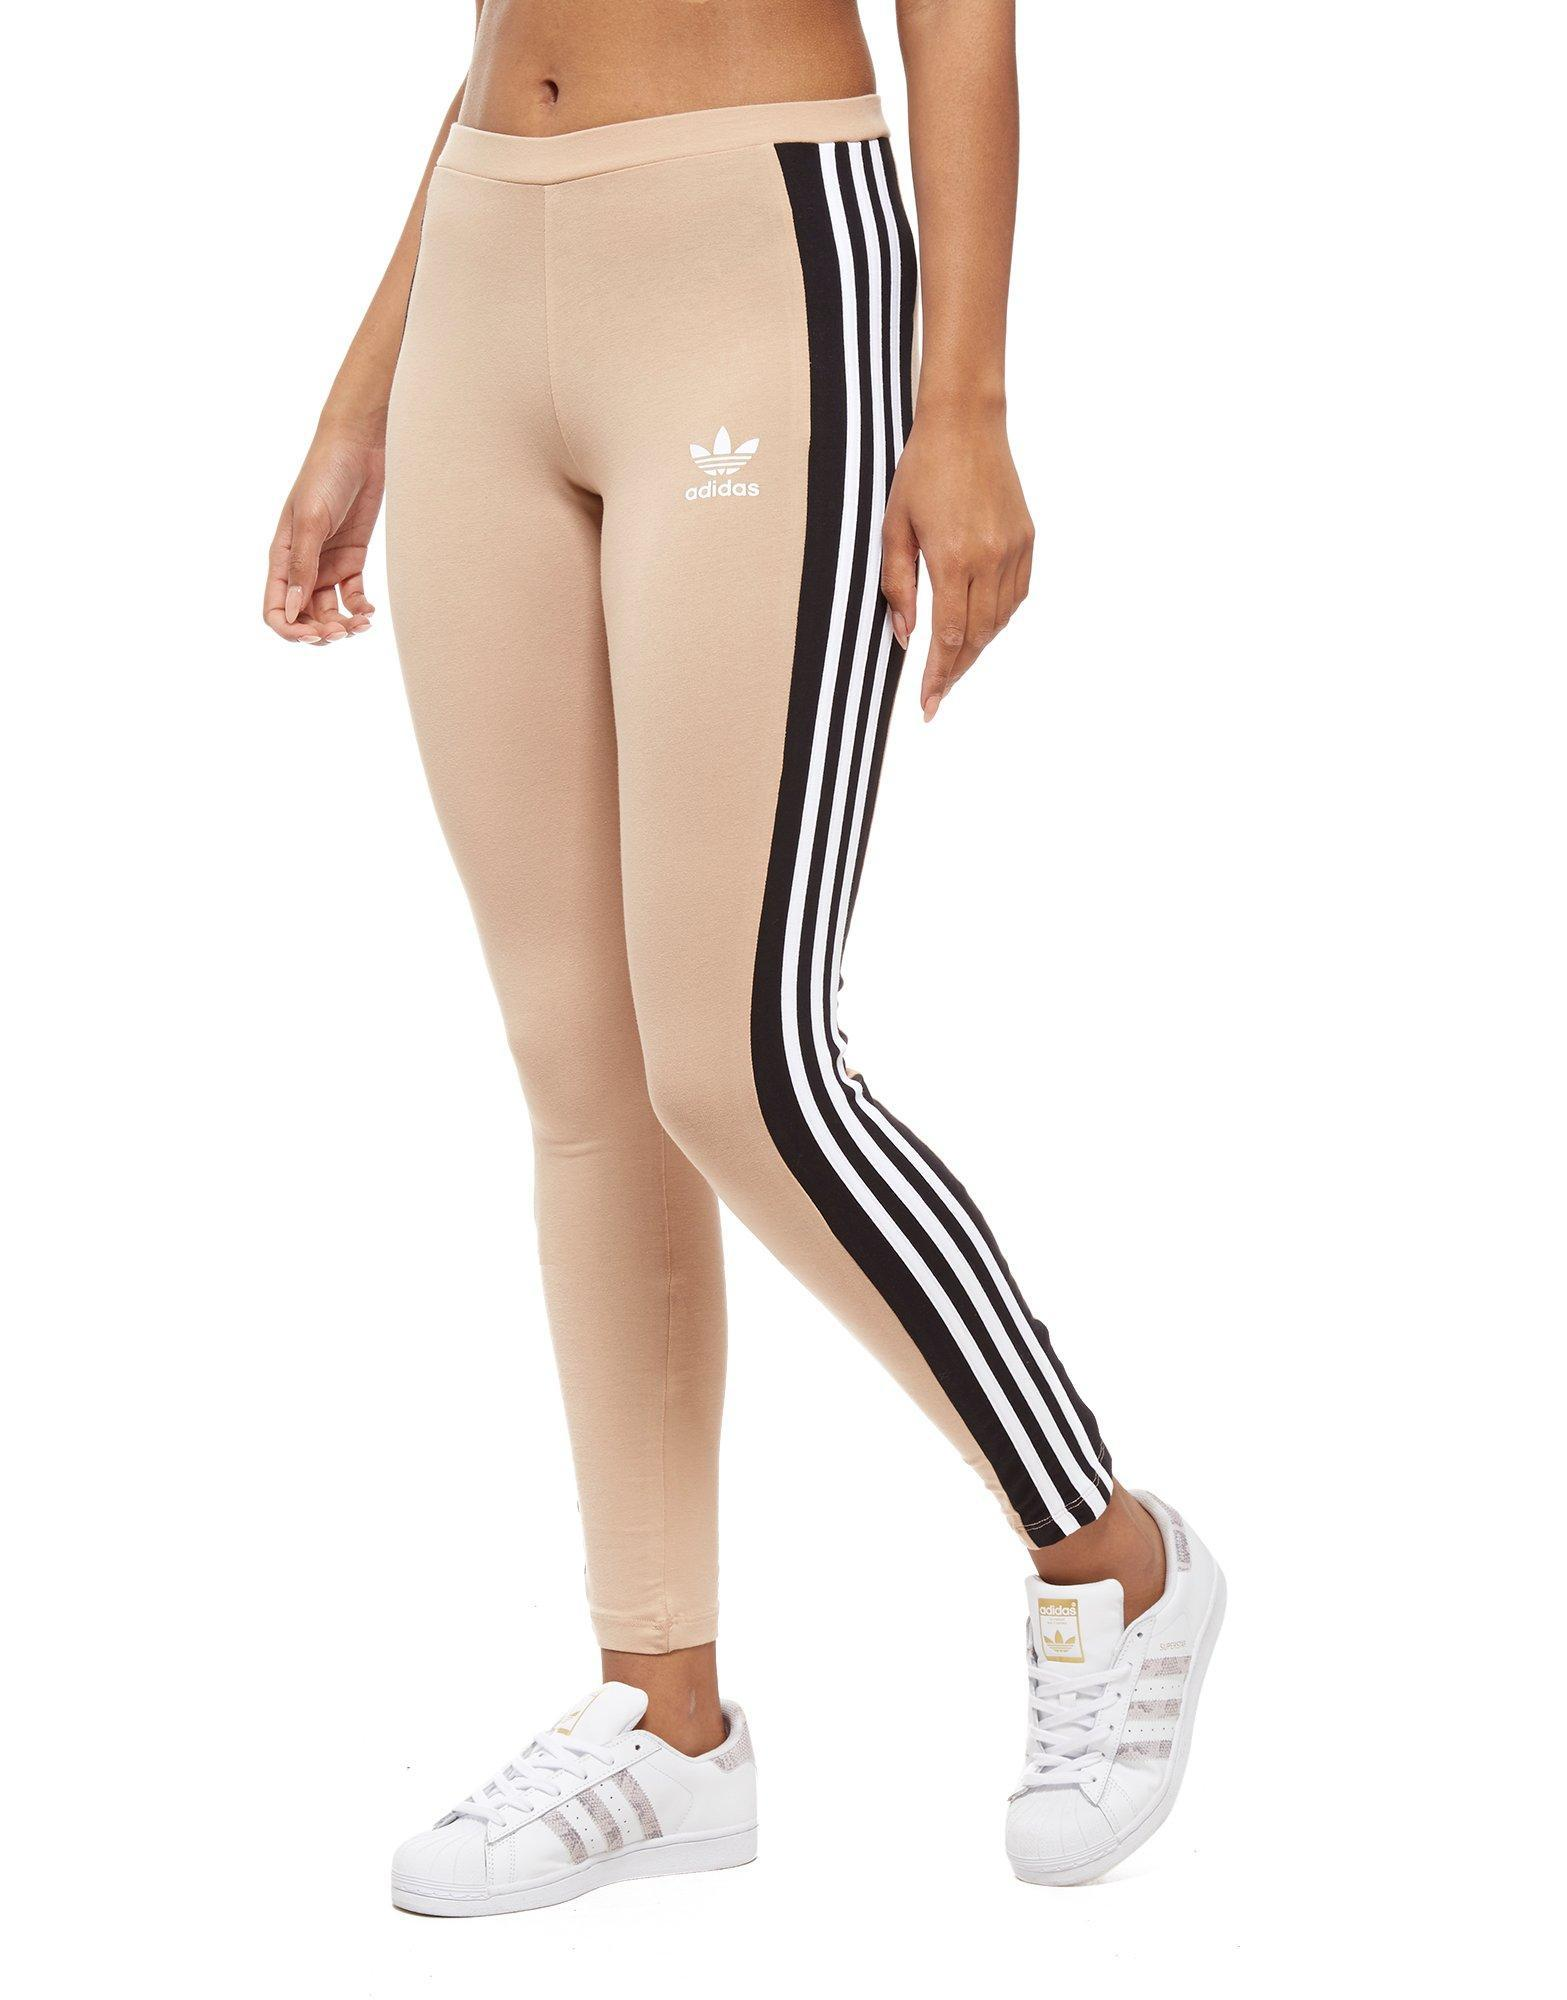 c9df9b3df65 adidas Originals 3-stripes Panel Leggings in Black - Lyst